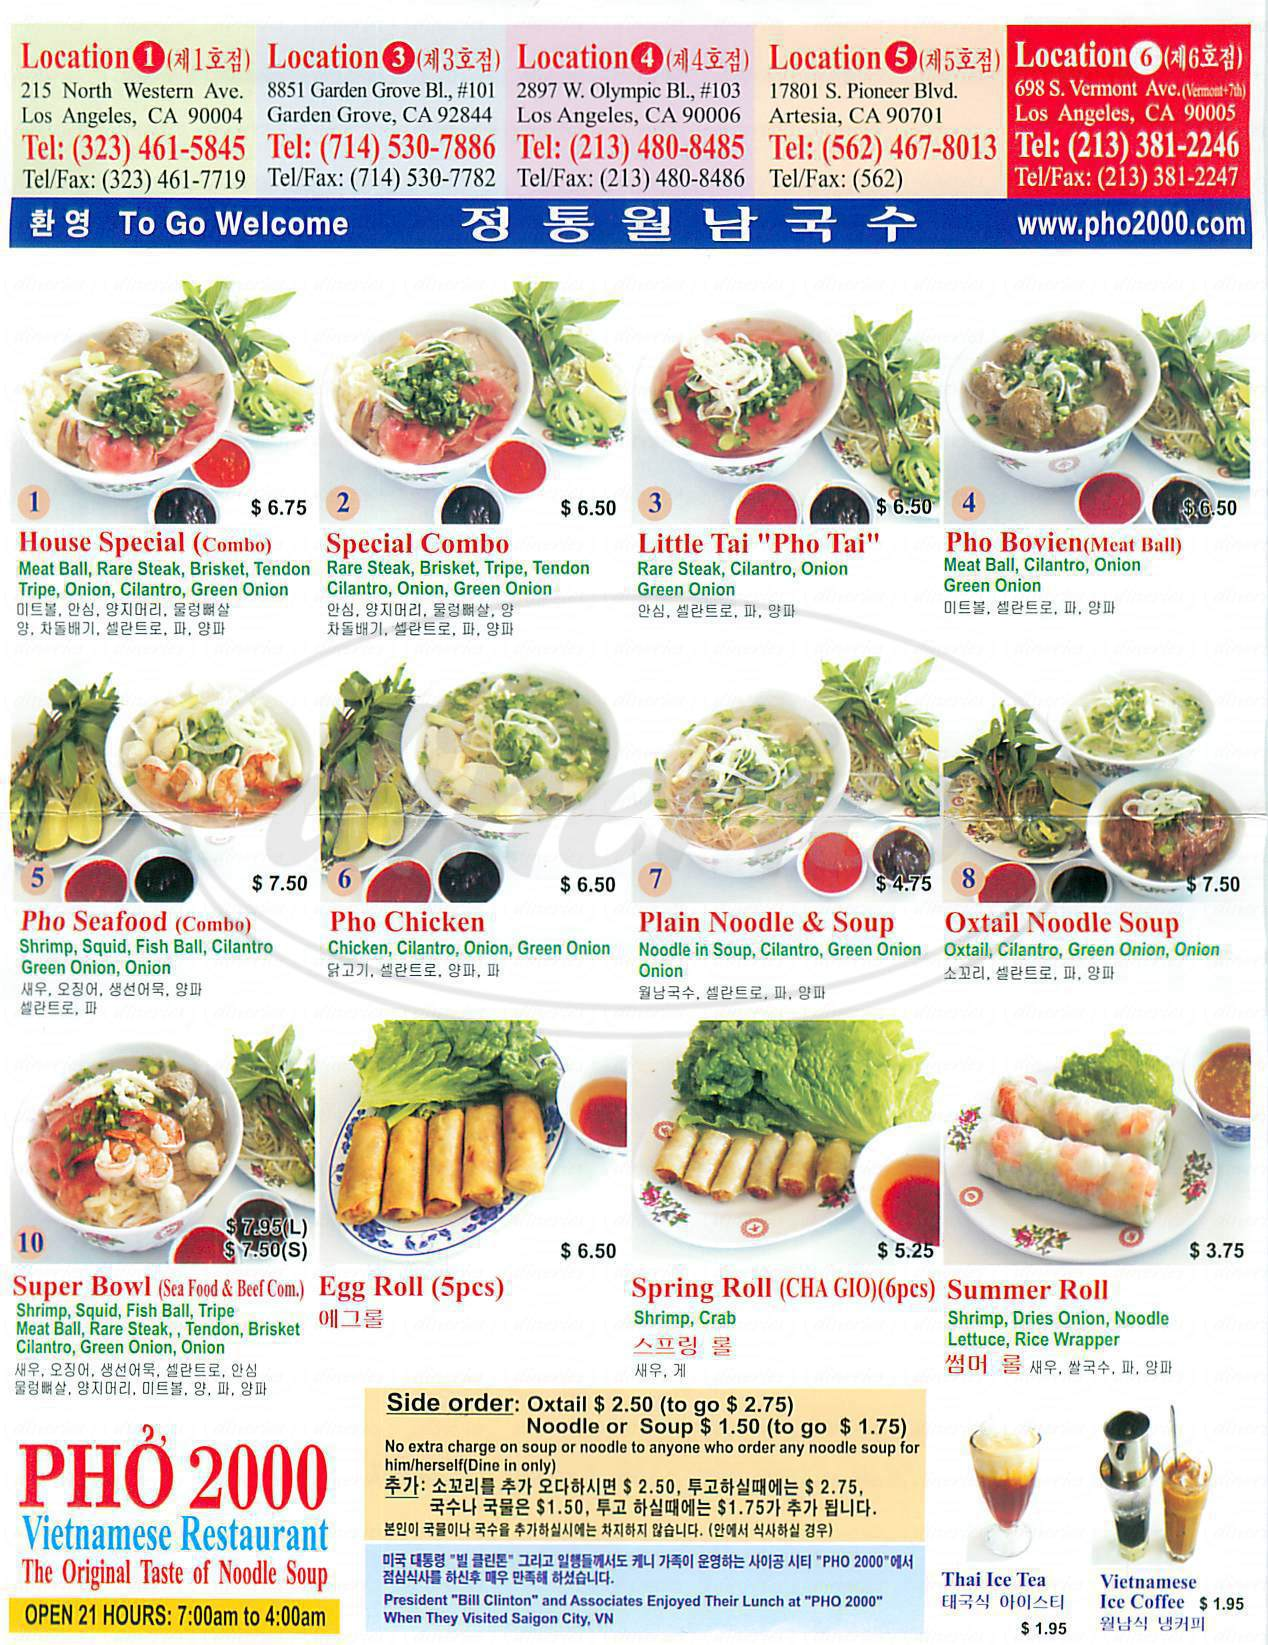 menu for Pho 2000 Restaurant